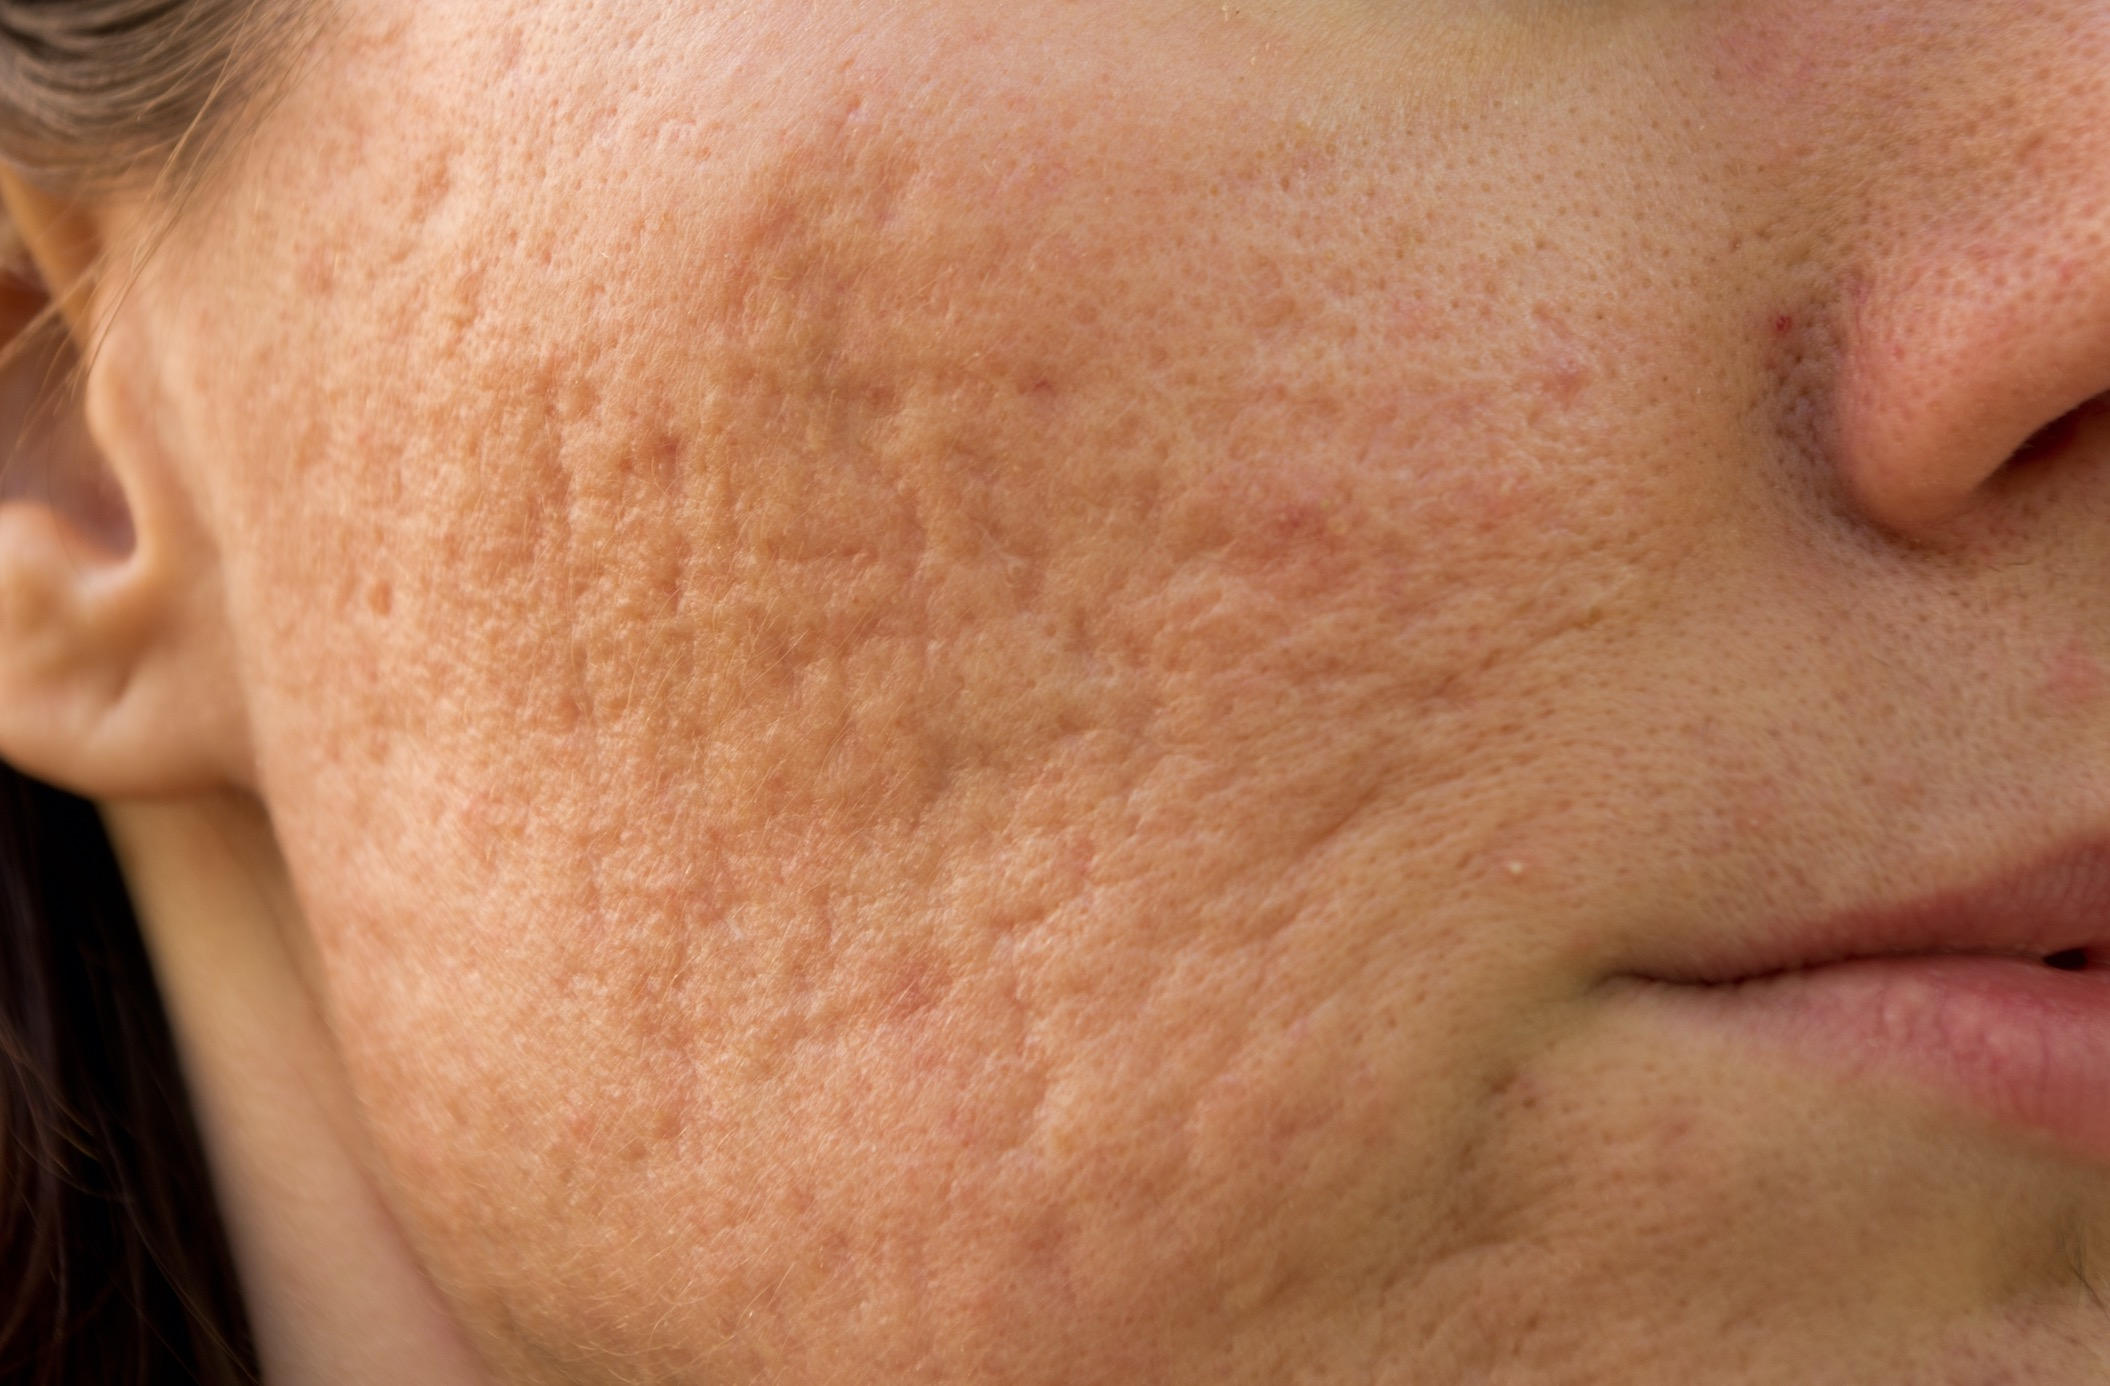 Face scars from acne and picking - finding a treatment plan that actually works - by Dr. Brandith Irwin on SkinTour